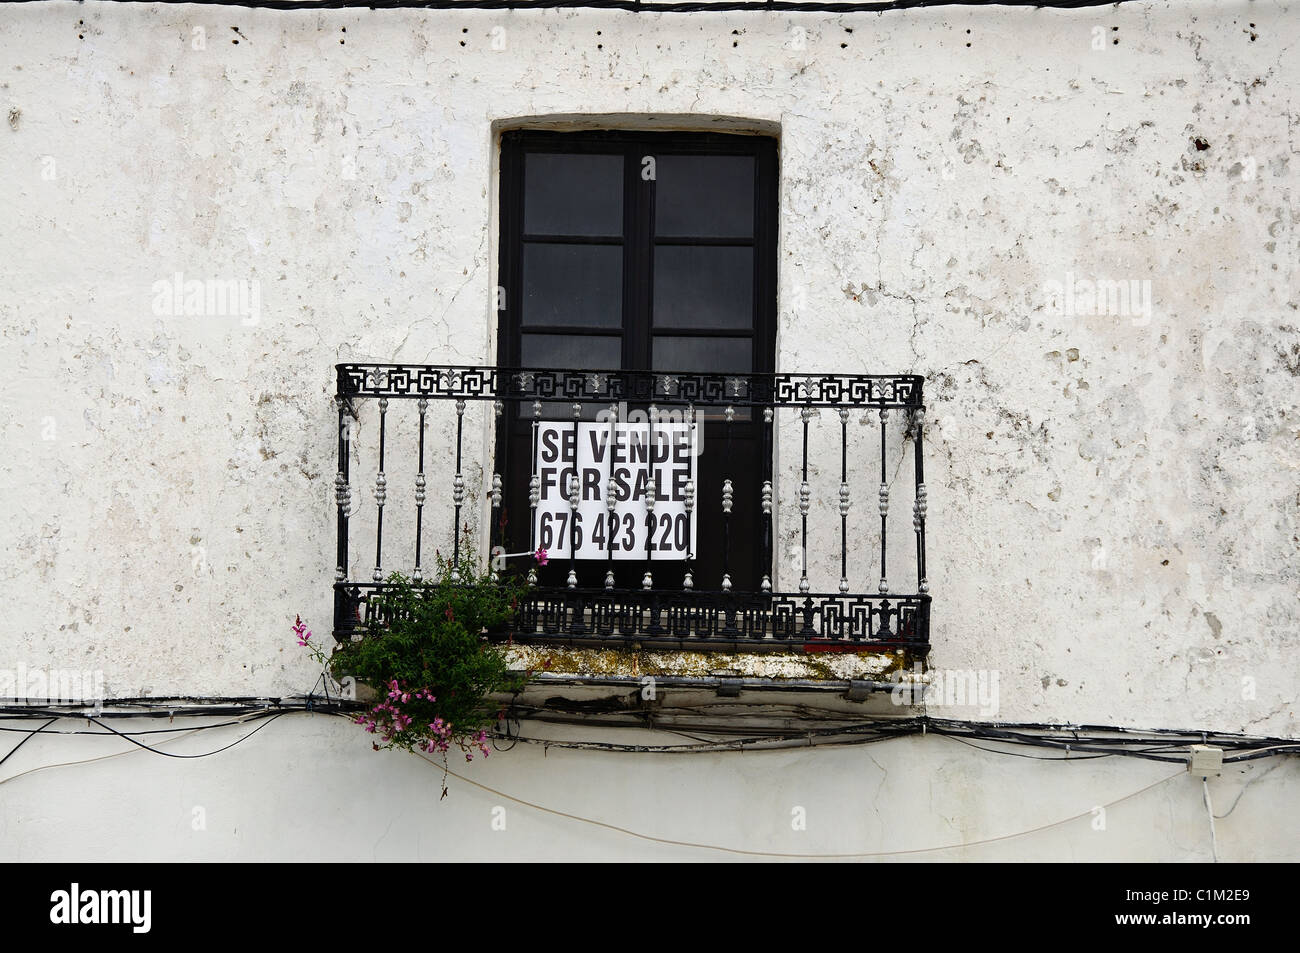 Wrought Iron Balcony And Window With For Sale Sign, Casares, Cadiz  Province, Andalucia